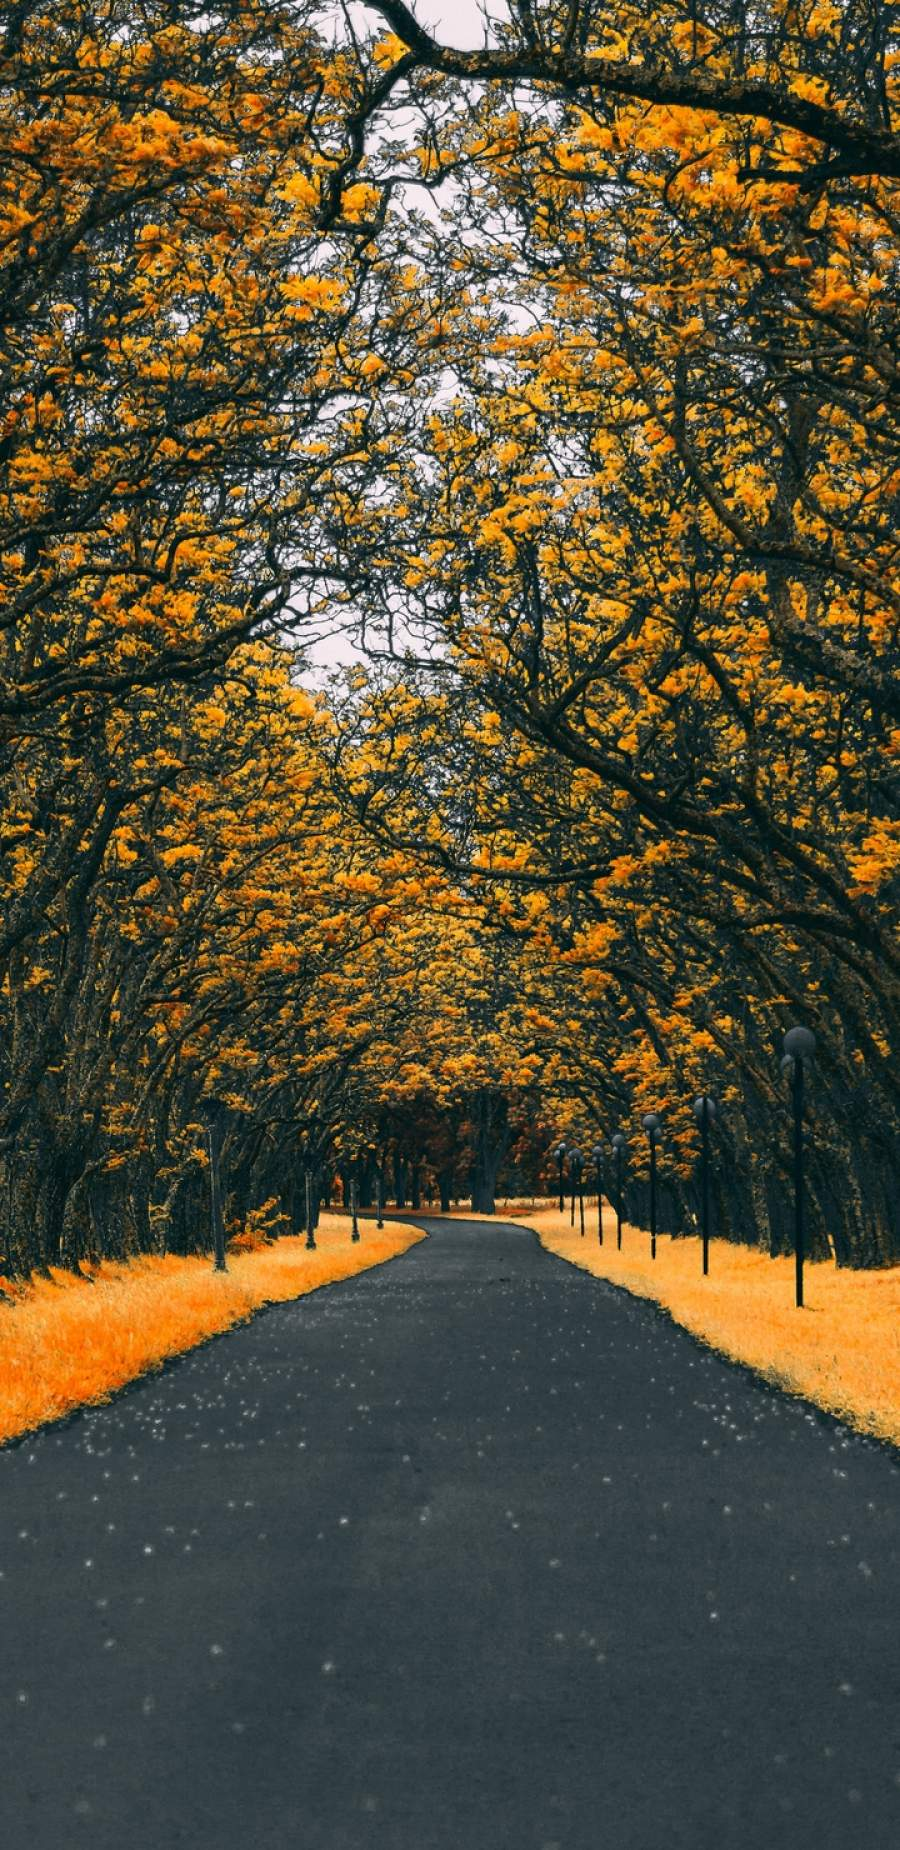 Road Autumn 4K iPhone Wallpaper